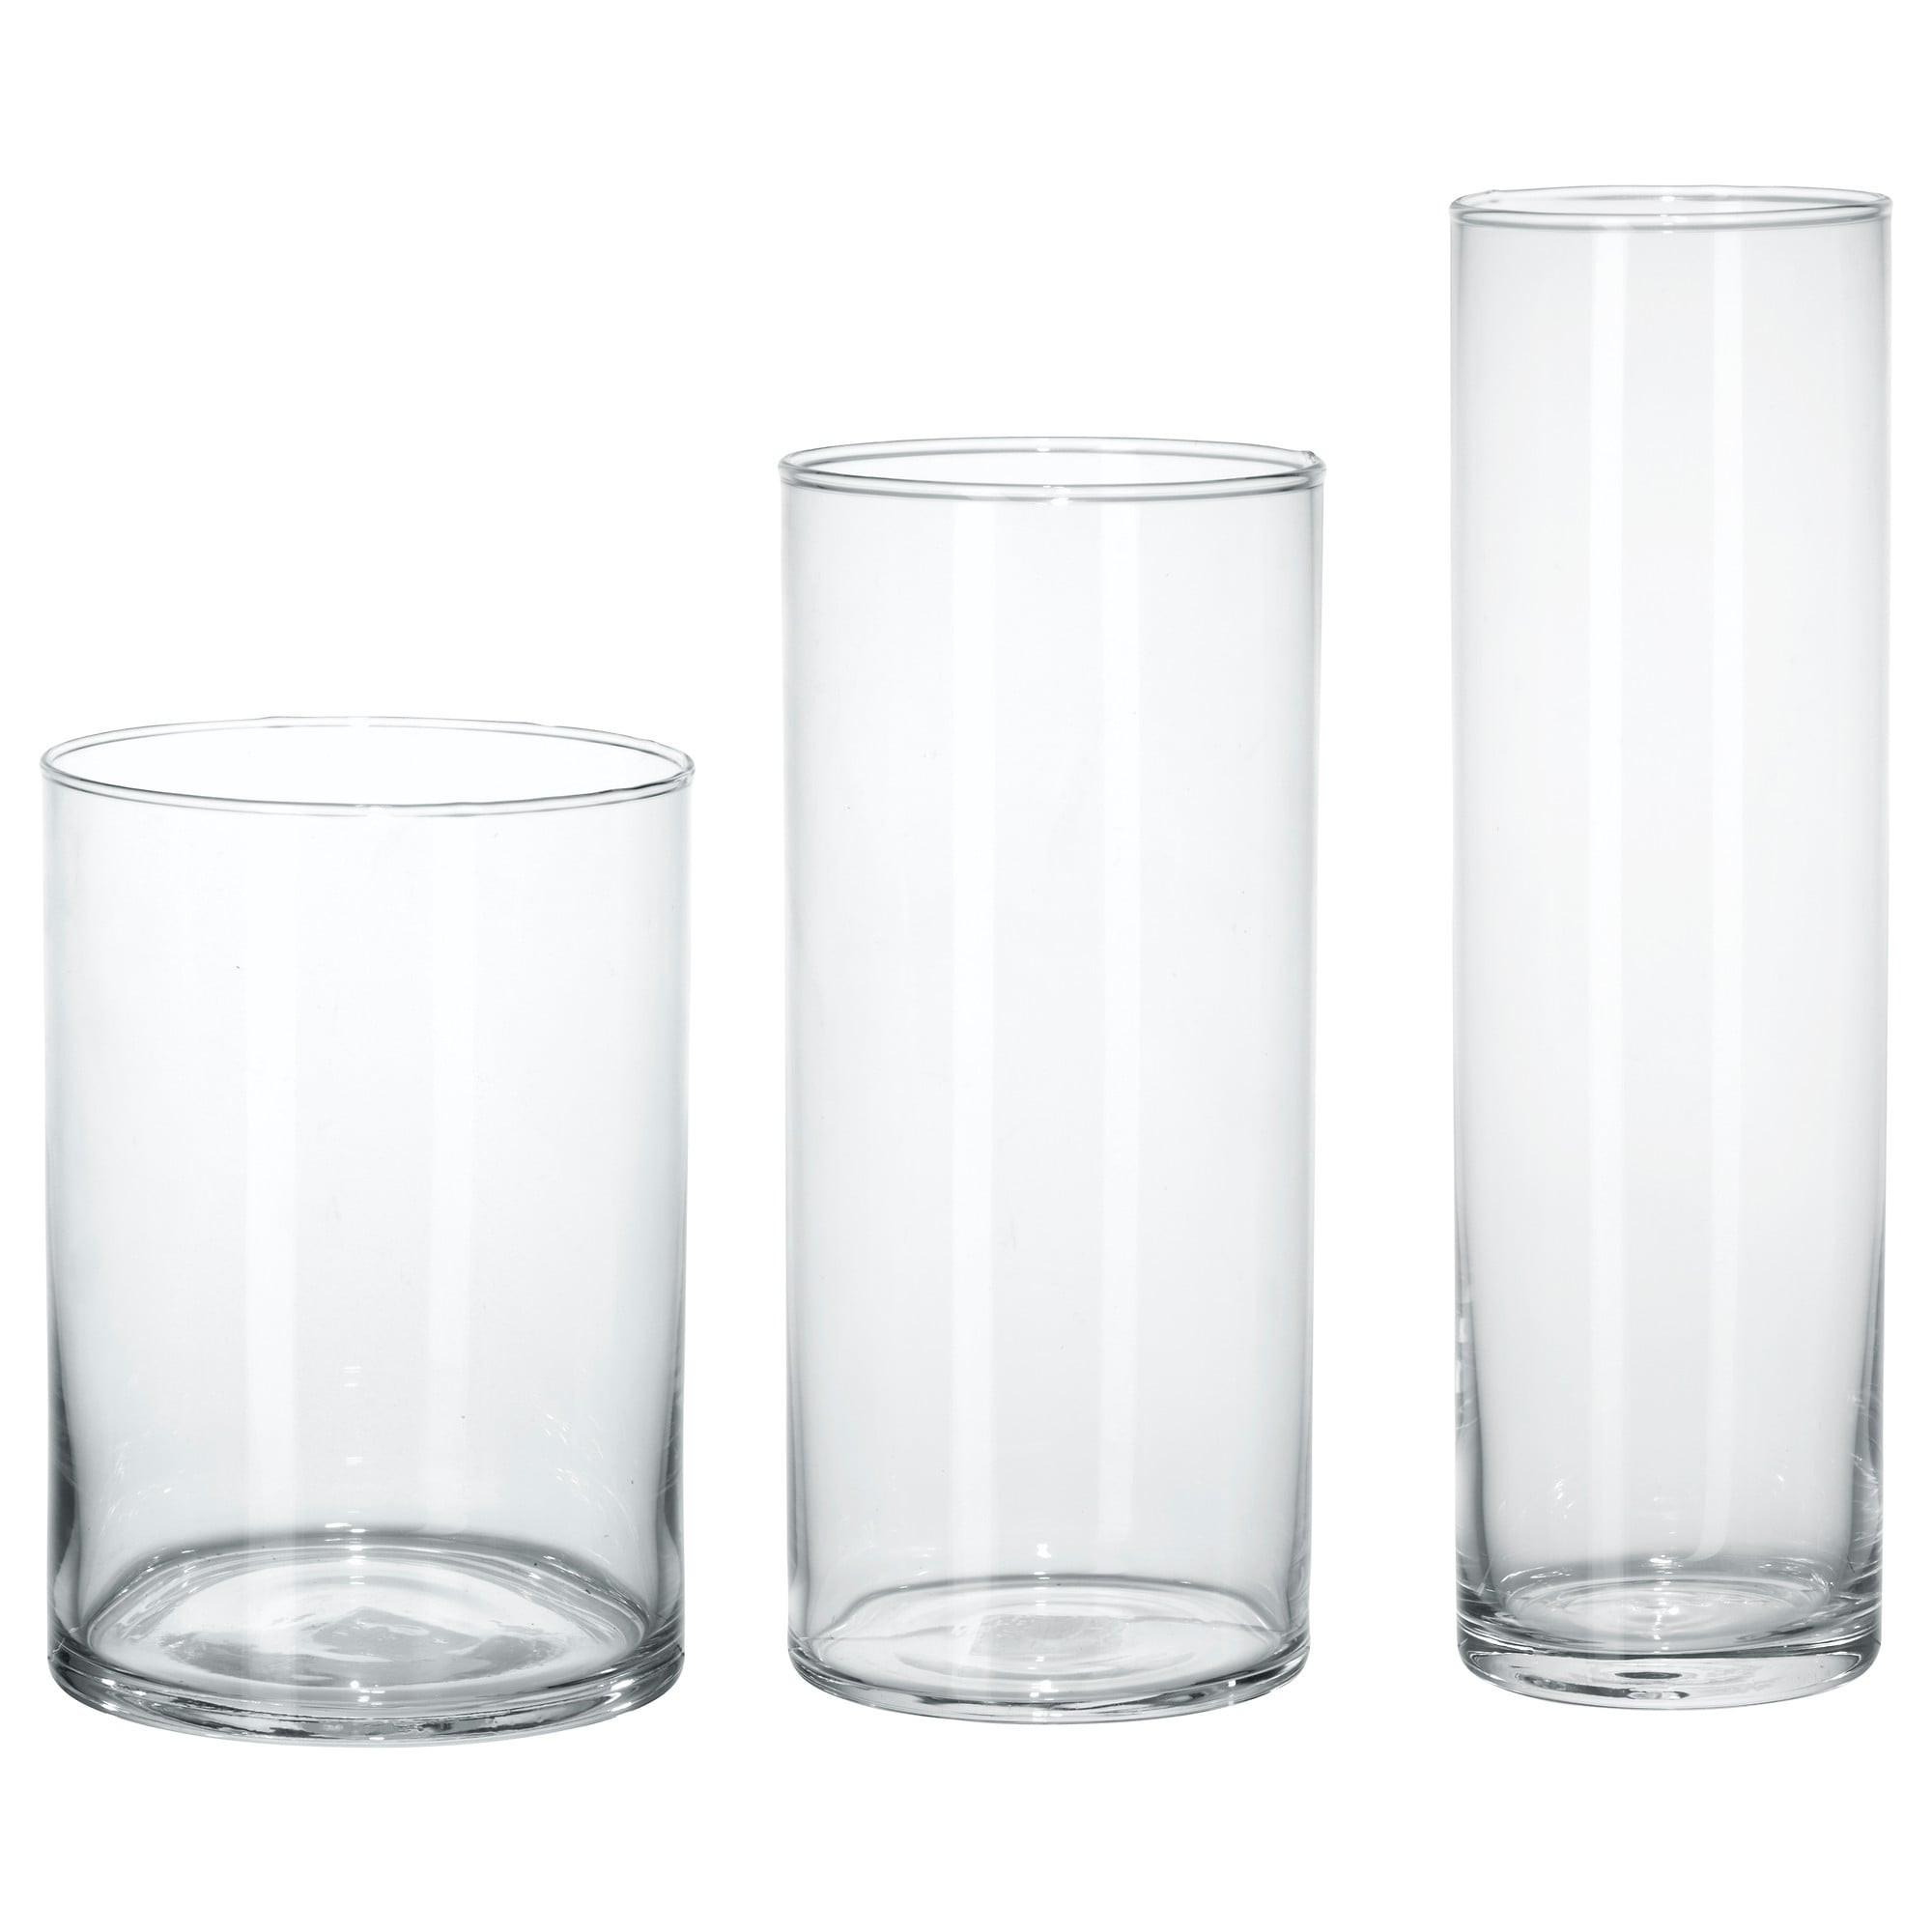 tall glass vases for sale of cylinder vase set of 3 ikea with english frana§ais